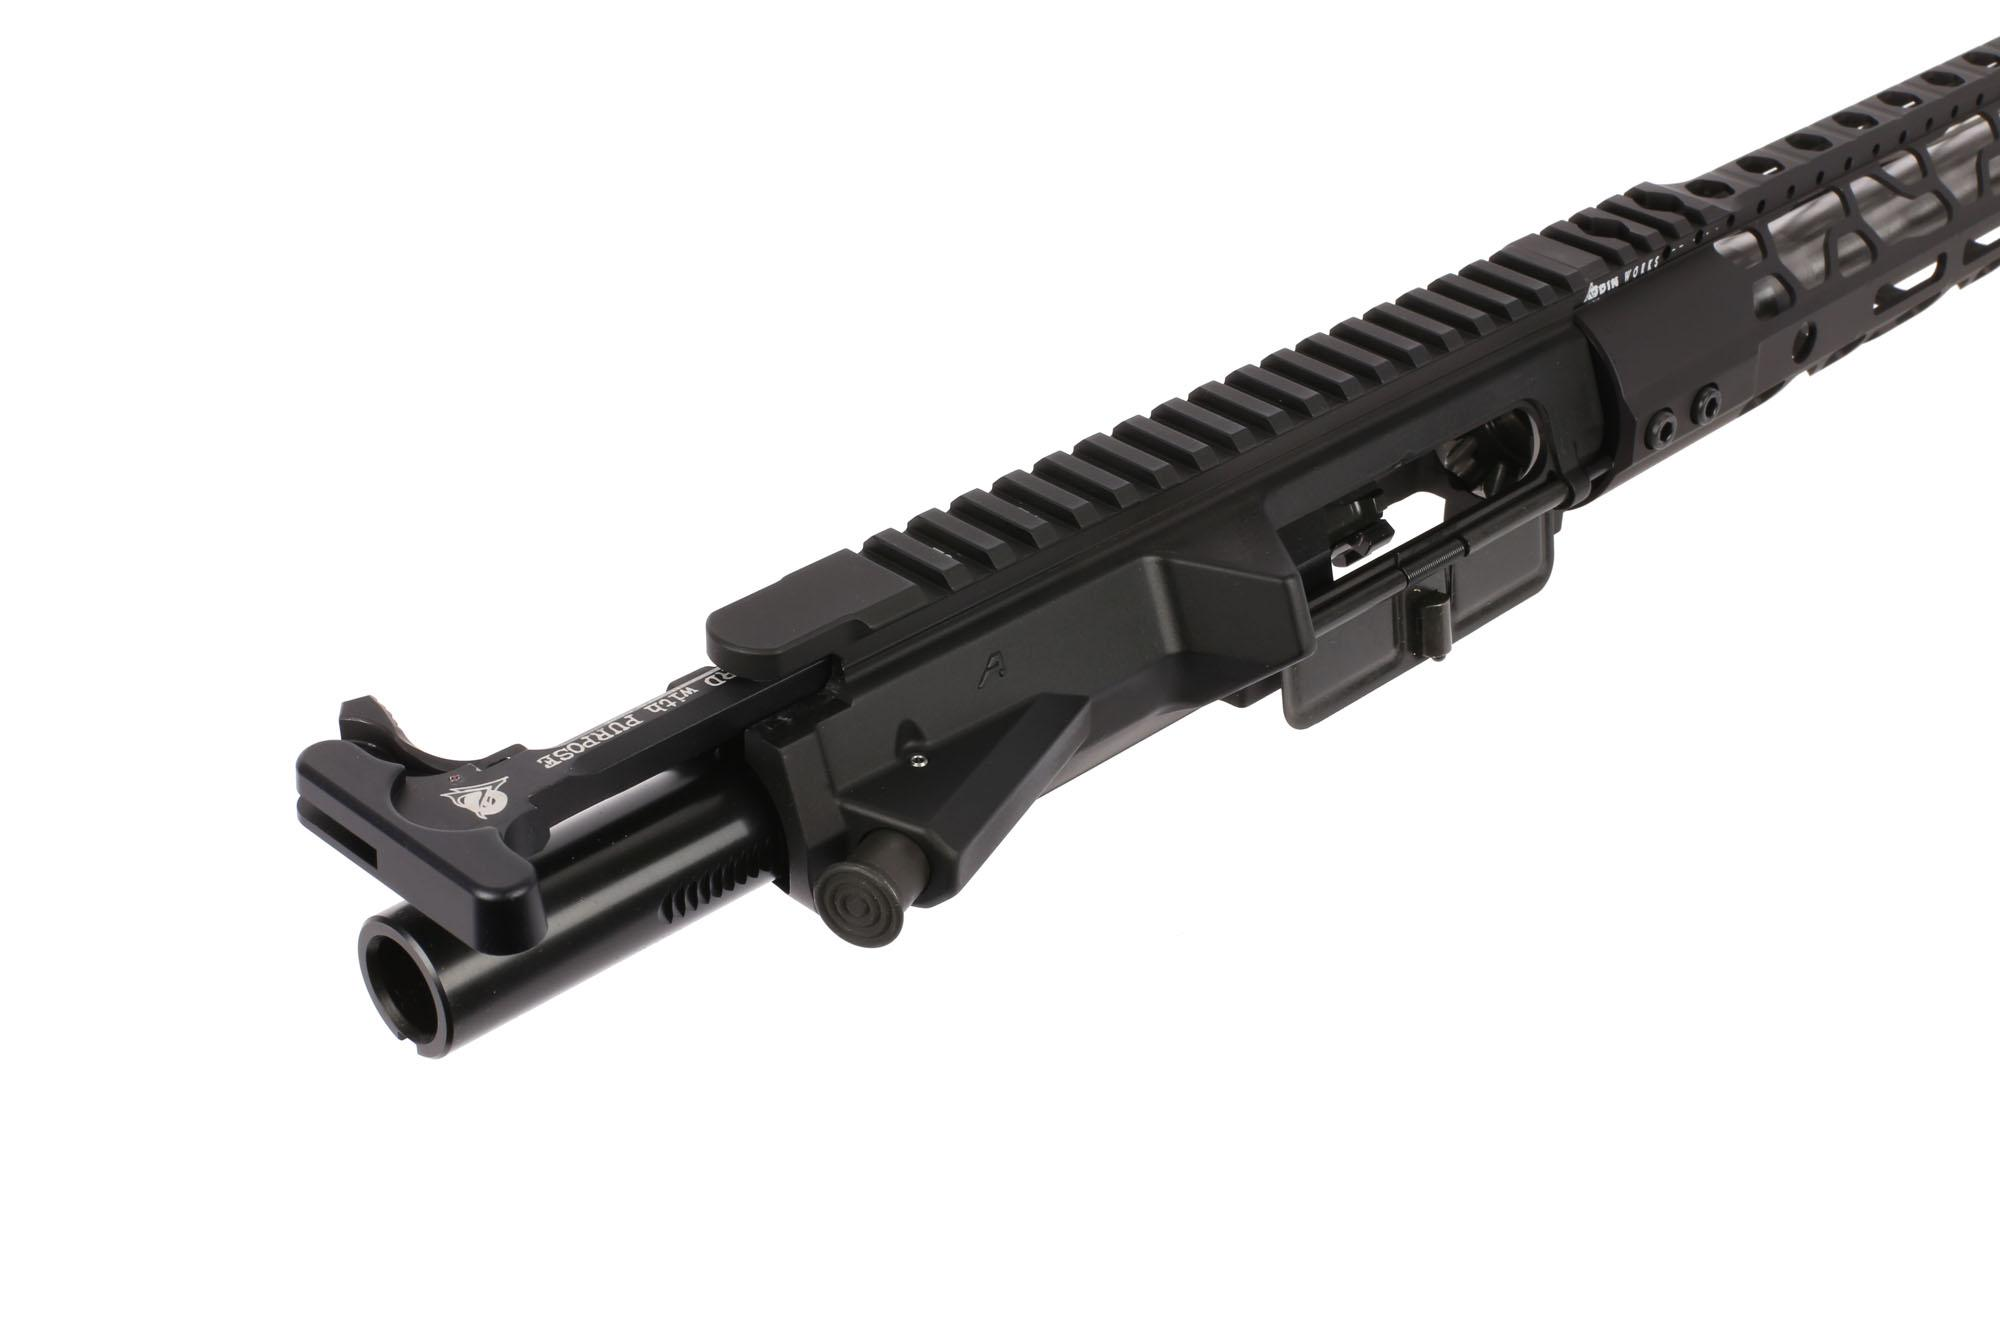 "ODIN Works 22 6.5 Creedmoor XL Rifle Length Complete Upper - 17.5"" O2 Lite M-LOK Rail"